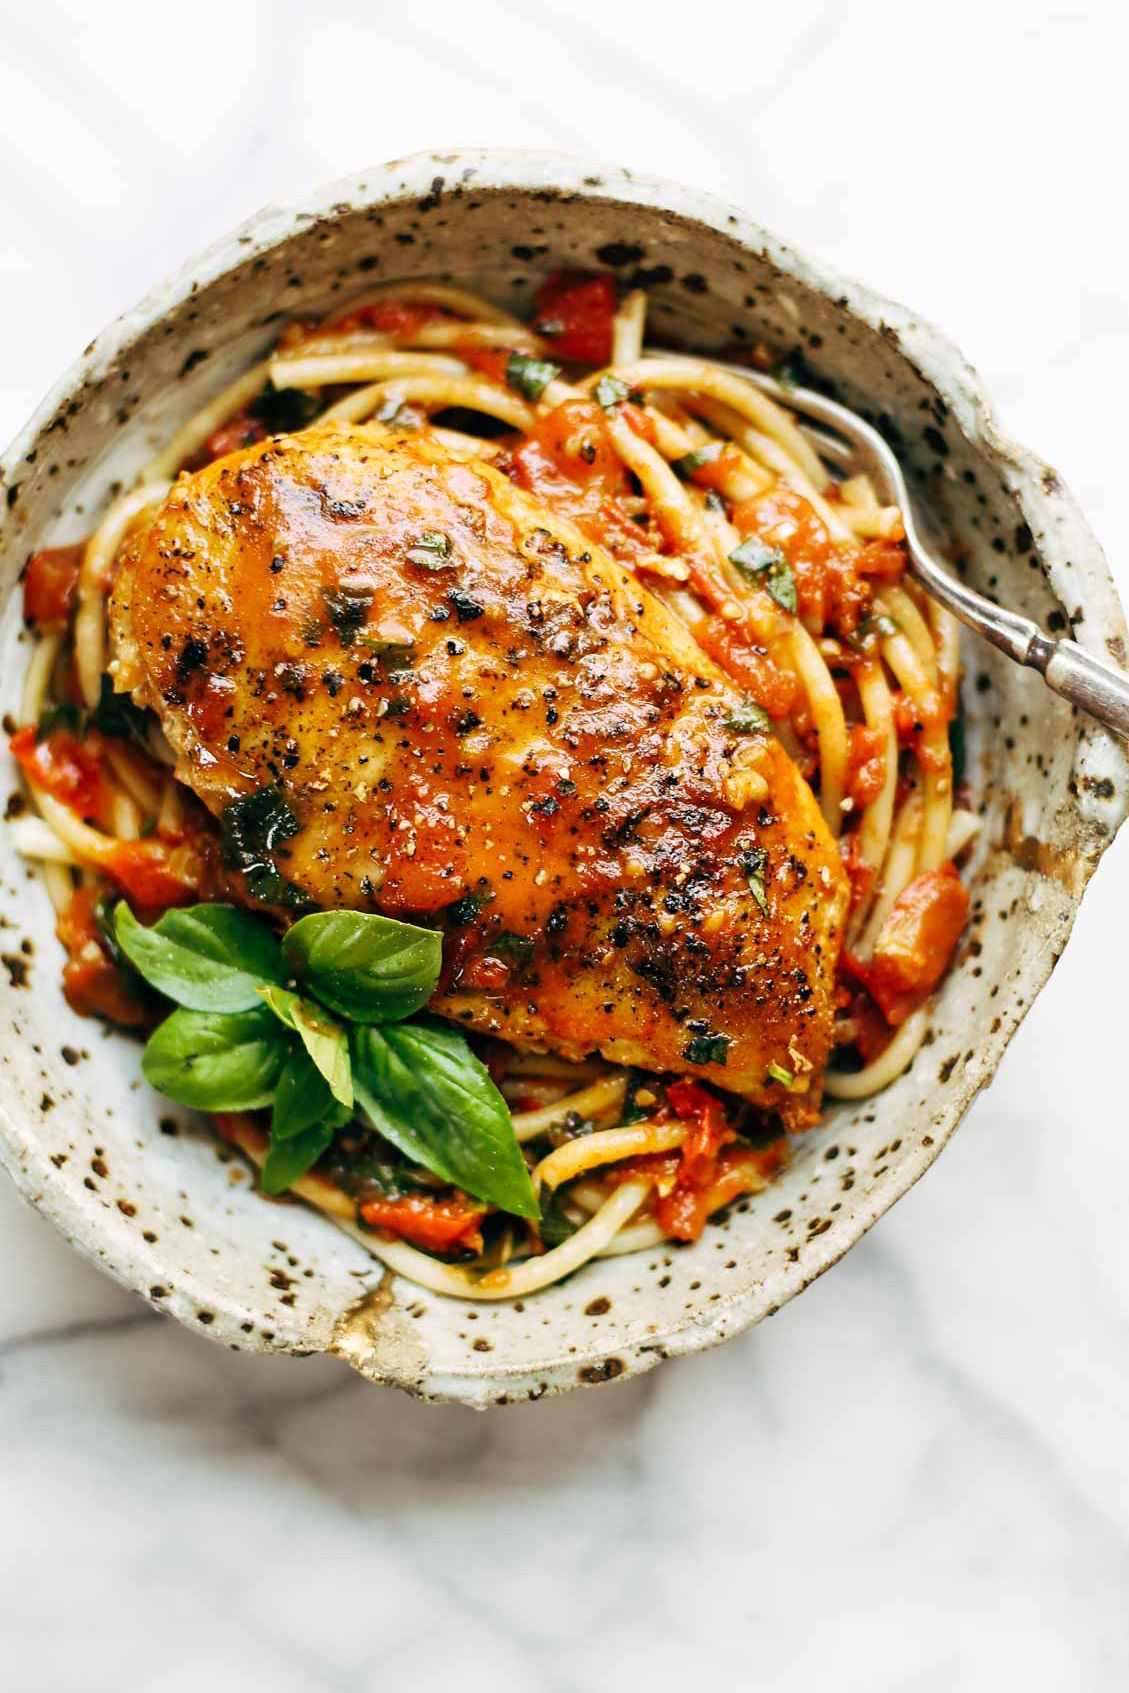 Garlic basil chicken with tomato butter sauce recipe garlic garlic basil chicken with tomato butter sauce noodle recipessauce recipesreal food forumfinder Image collections